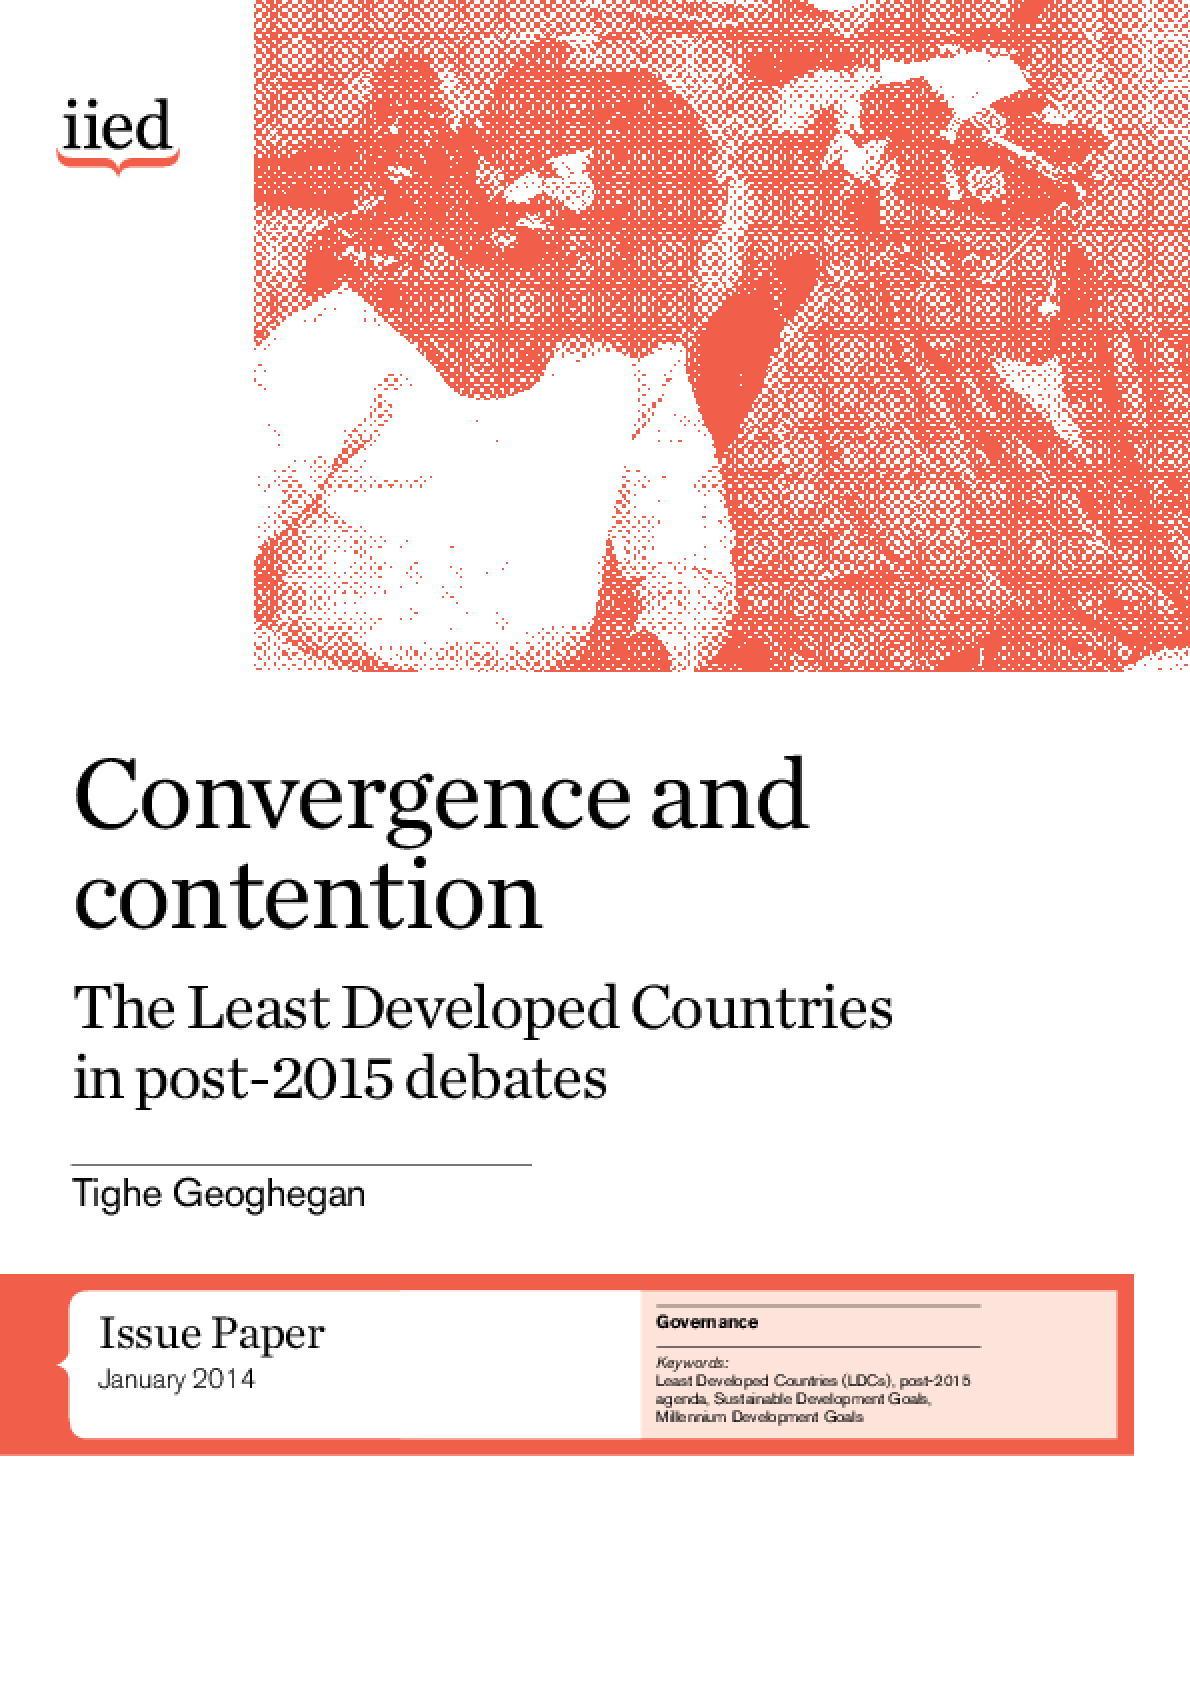 Convergence and Contention: The Least Developed Countries in Post-2015 Debates